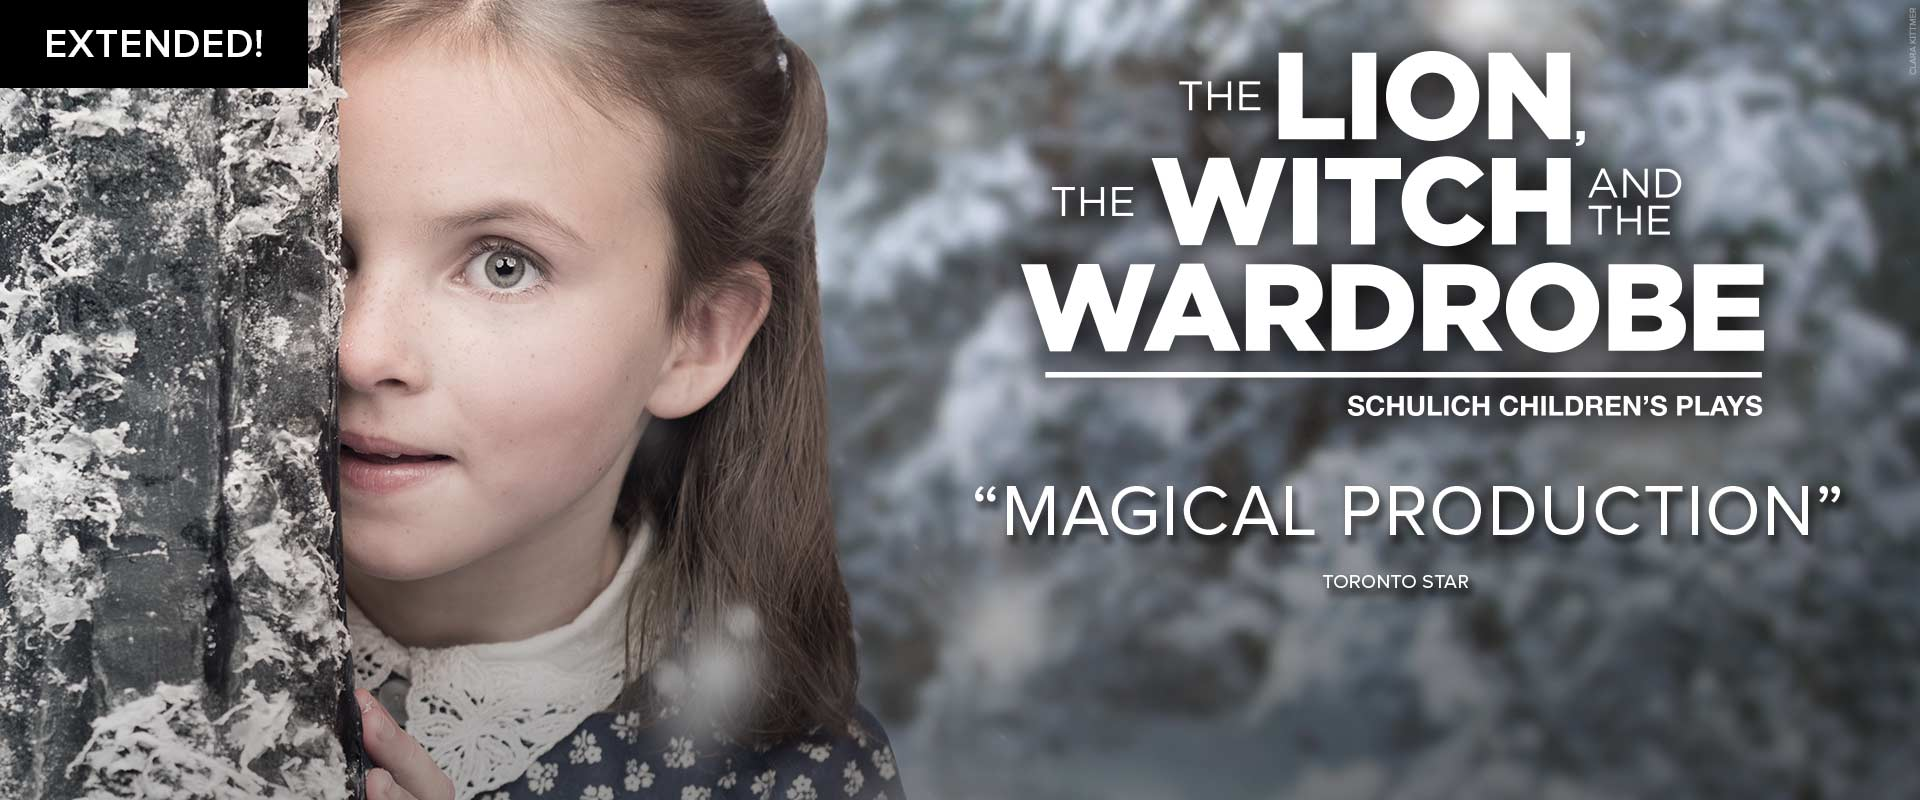 Publicity image from Lion, Witch and Wardrobe